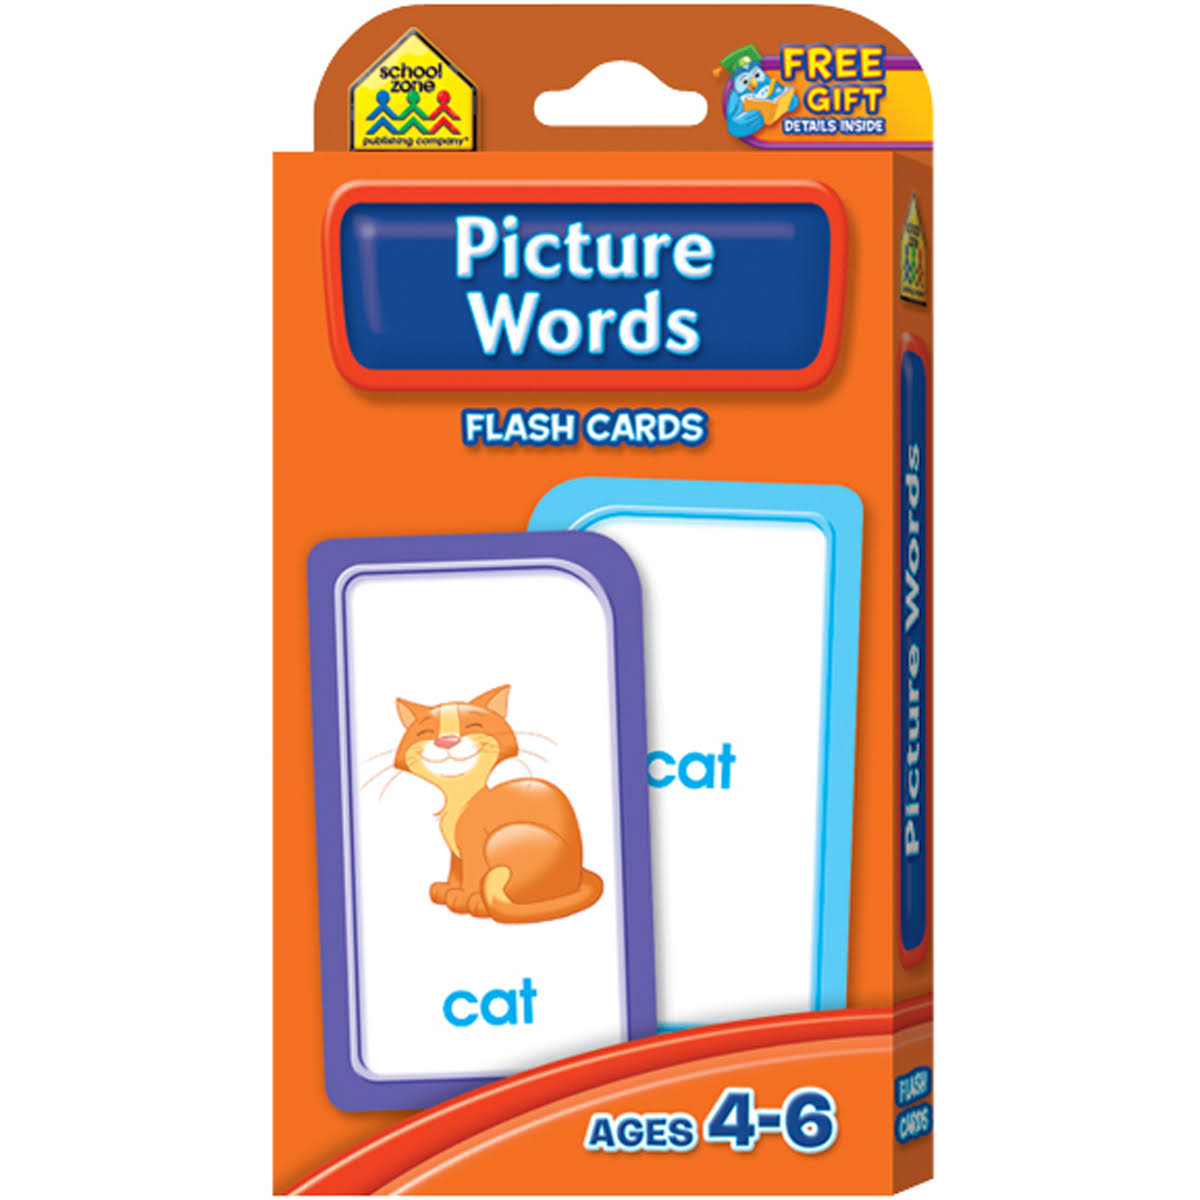 Picture Words Flash Cards - Ages 4-6